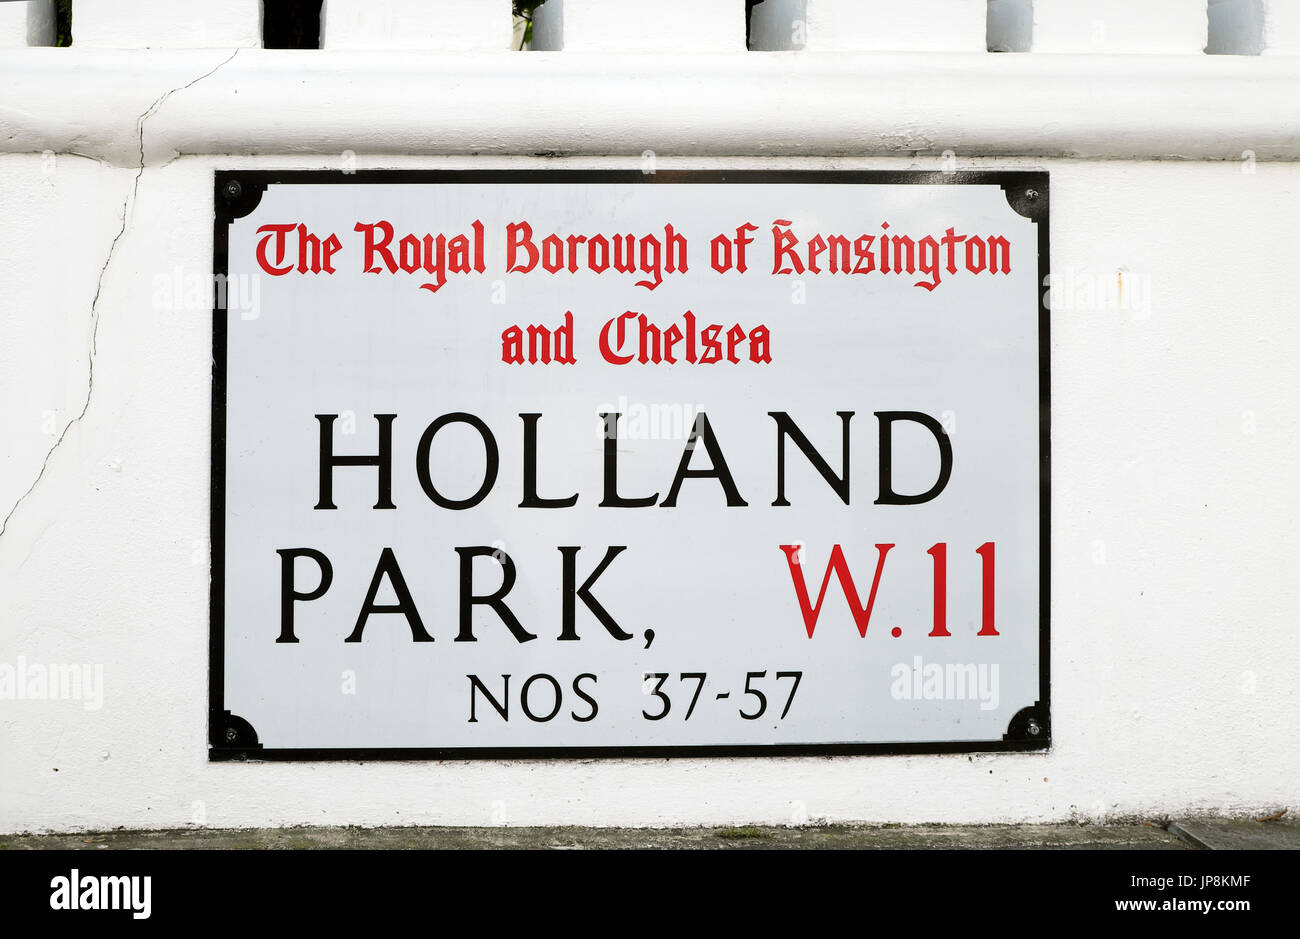 The Royal Borough of Kensington and Chelsea Holland Park W11 street sign in West London W11 England United Kingdom    KATHY DEWITT - Stock Image